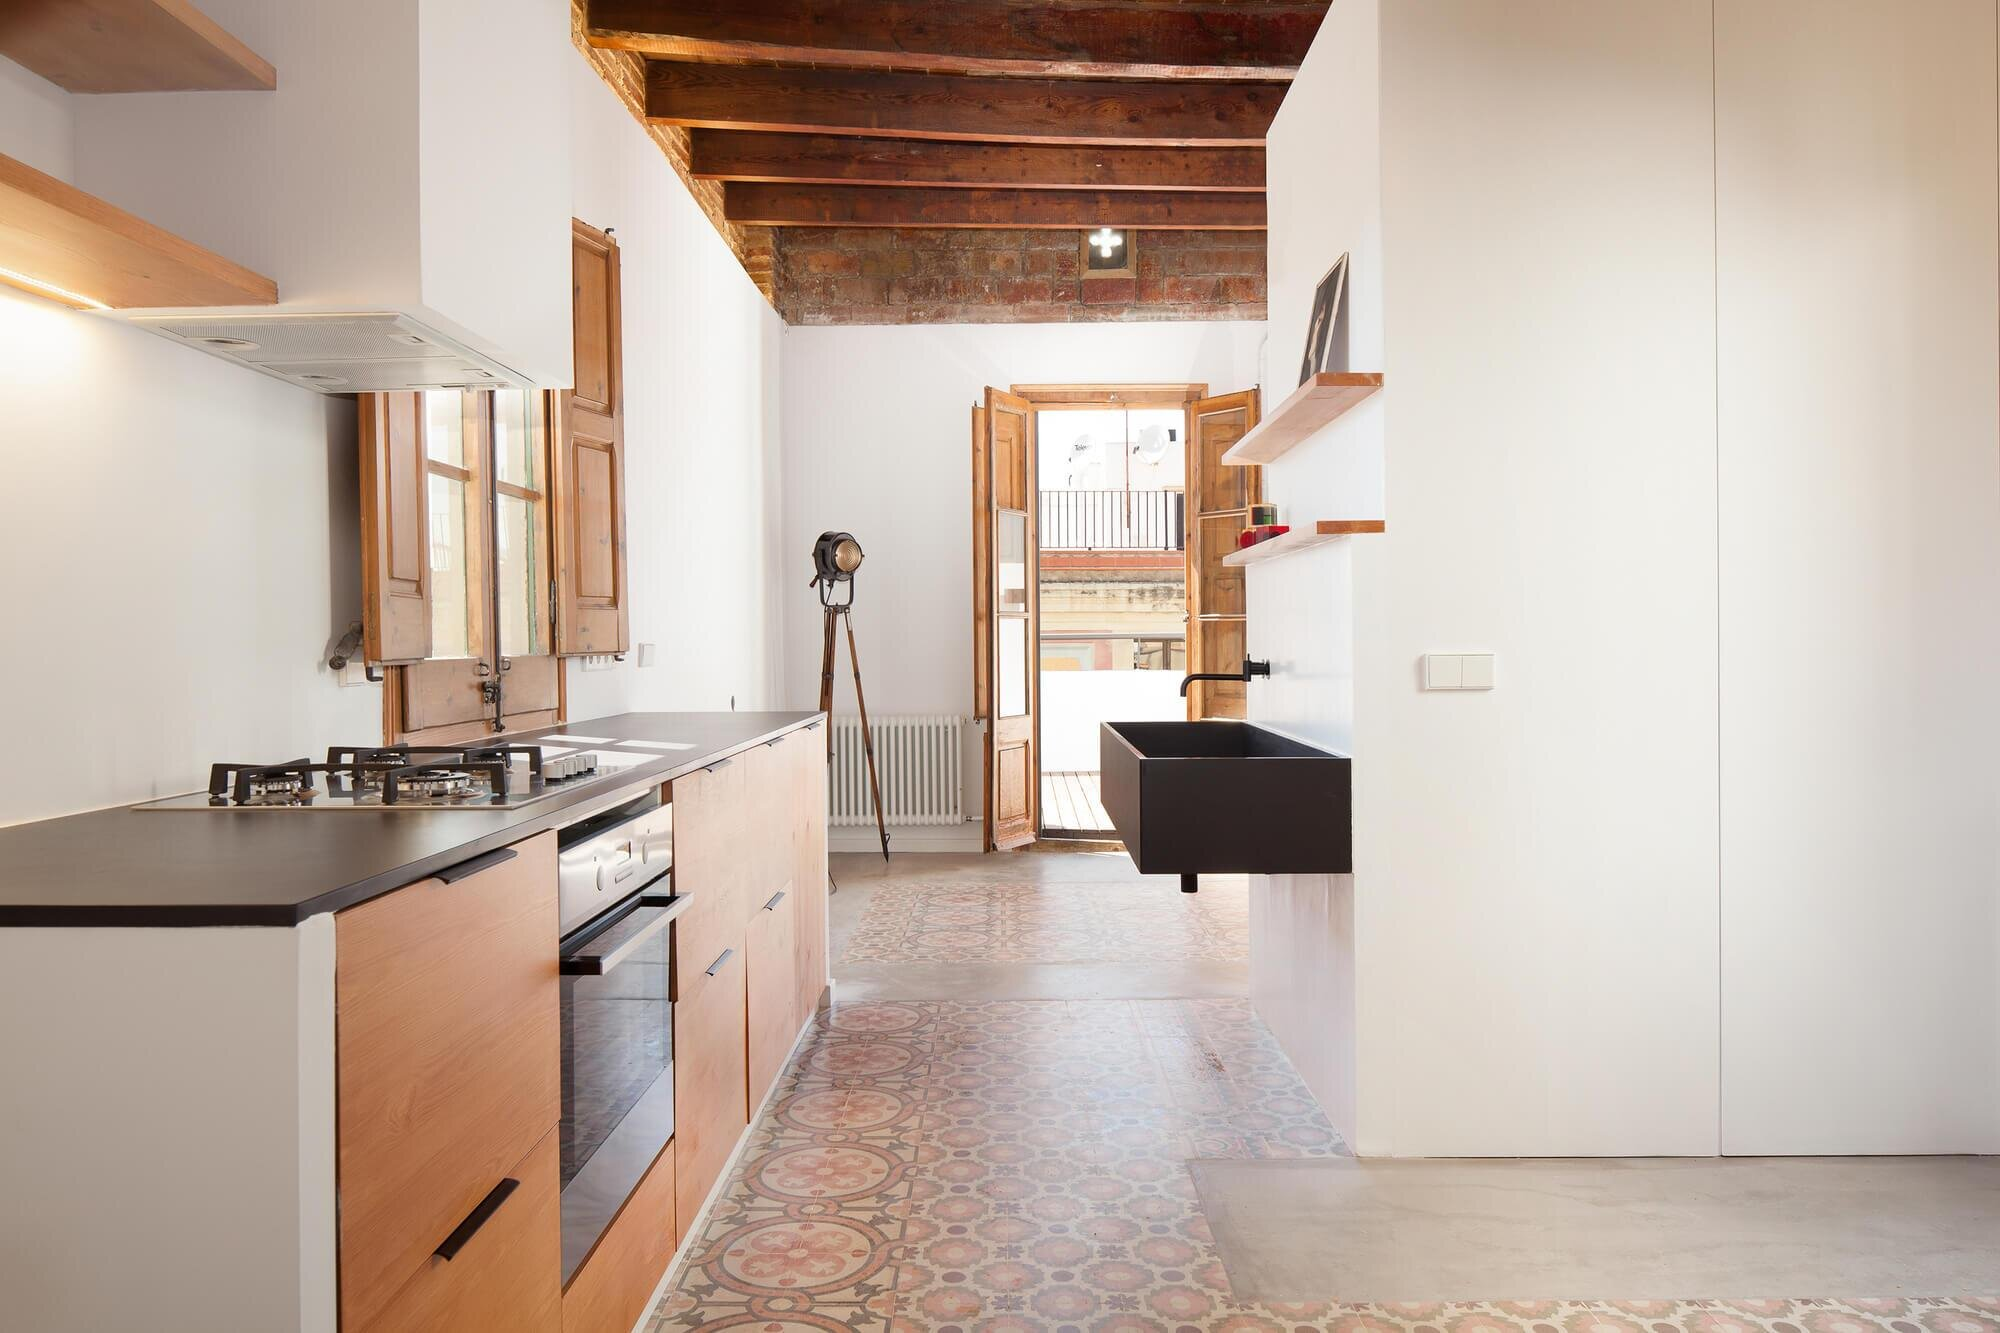 A53 Restore And Update An Old Barcelona Apartment To A